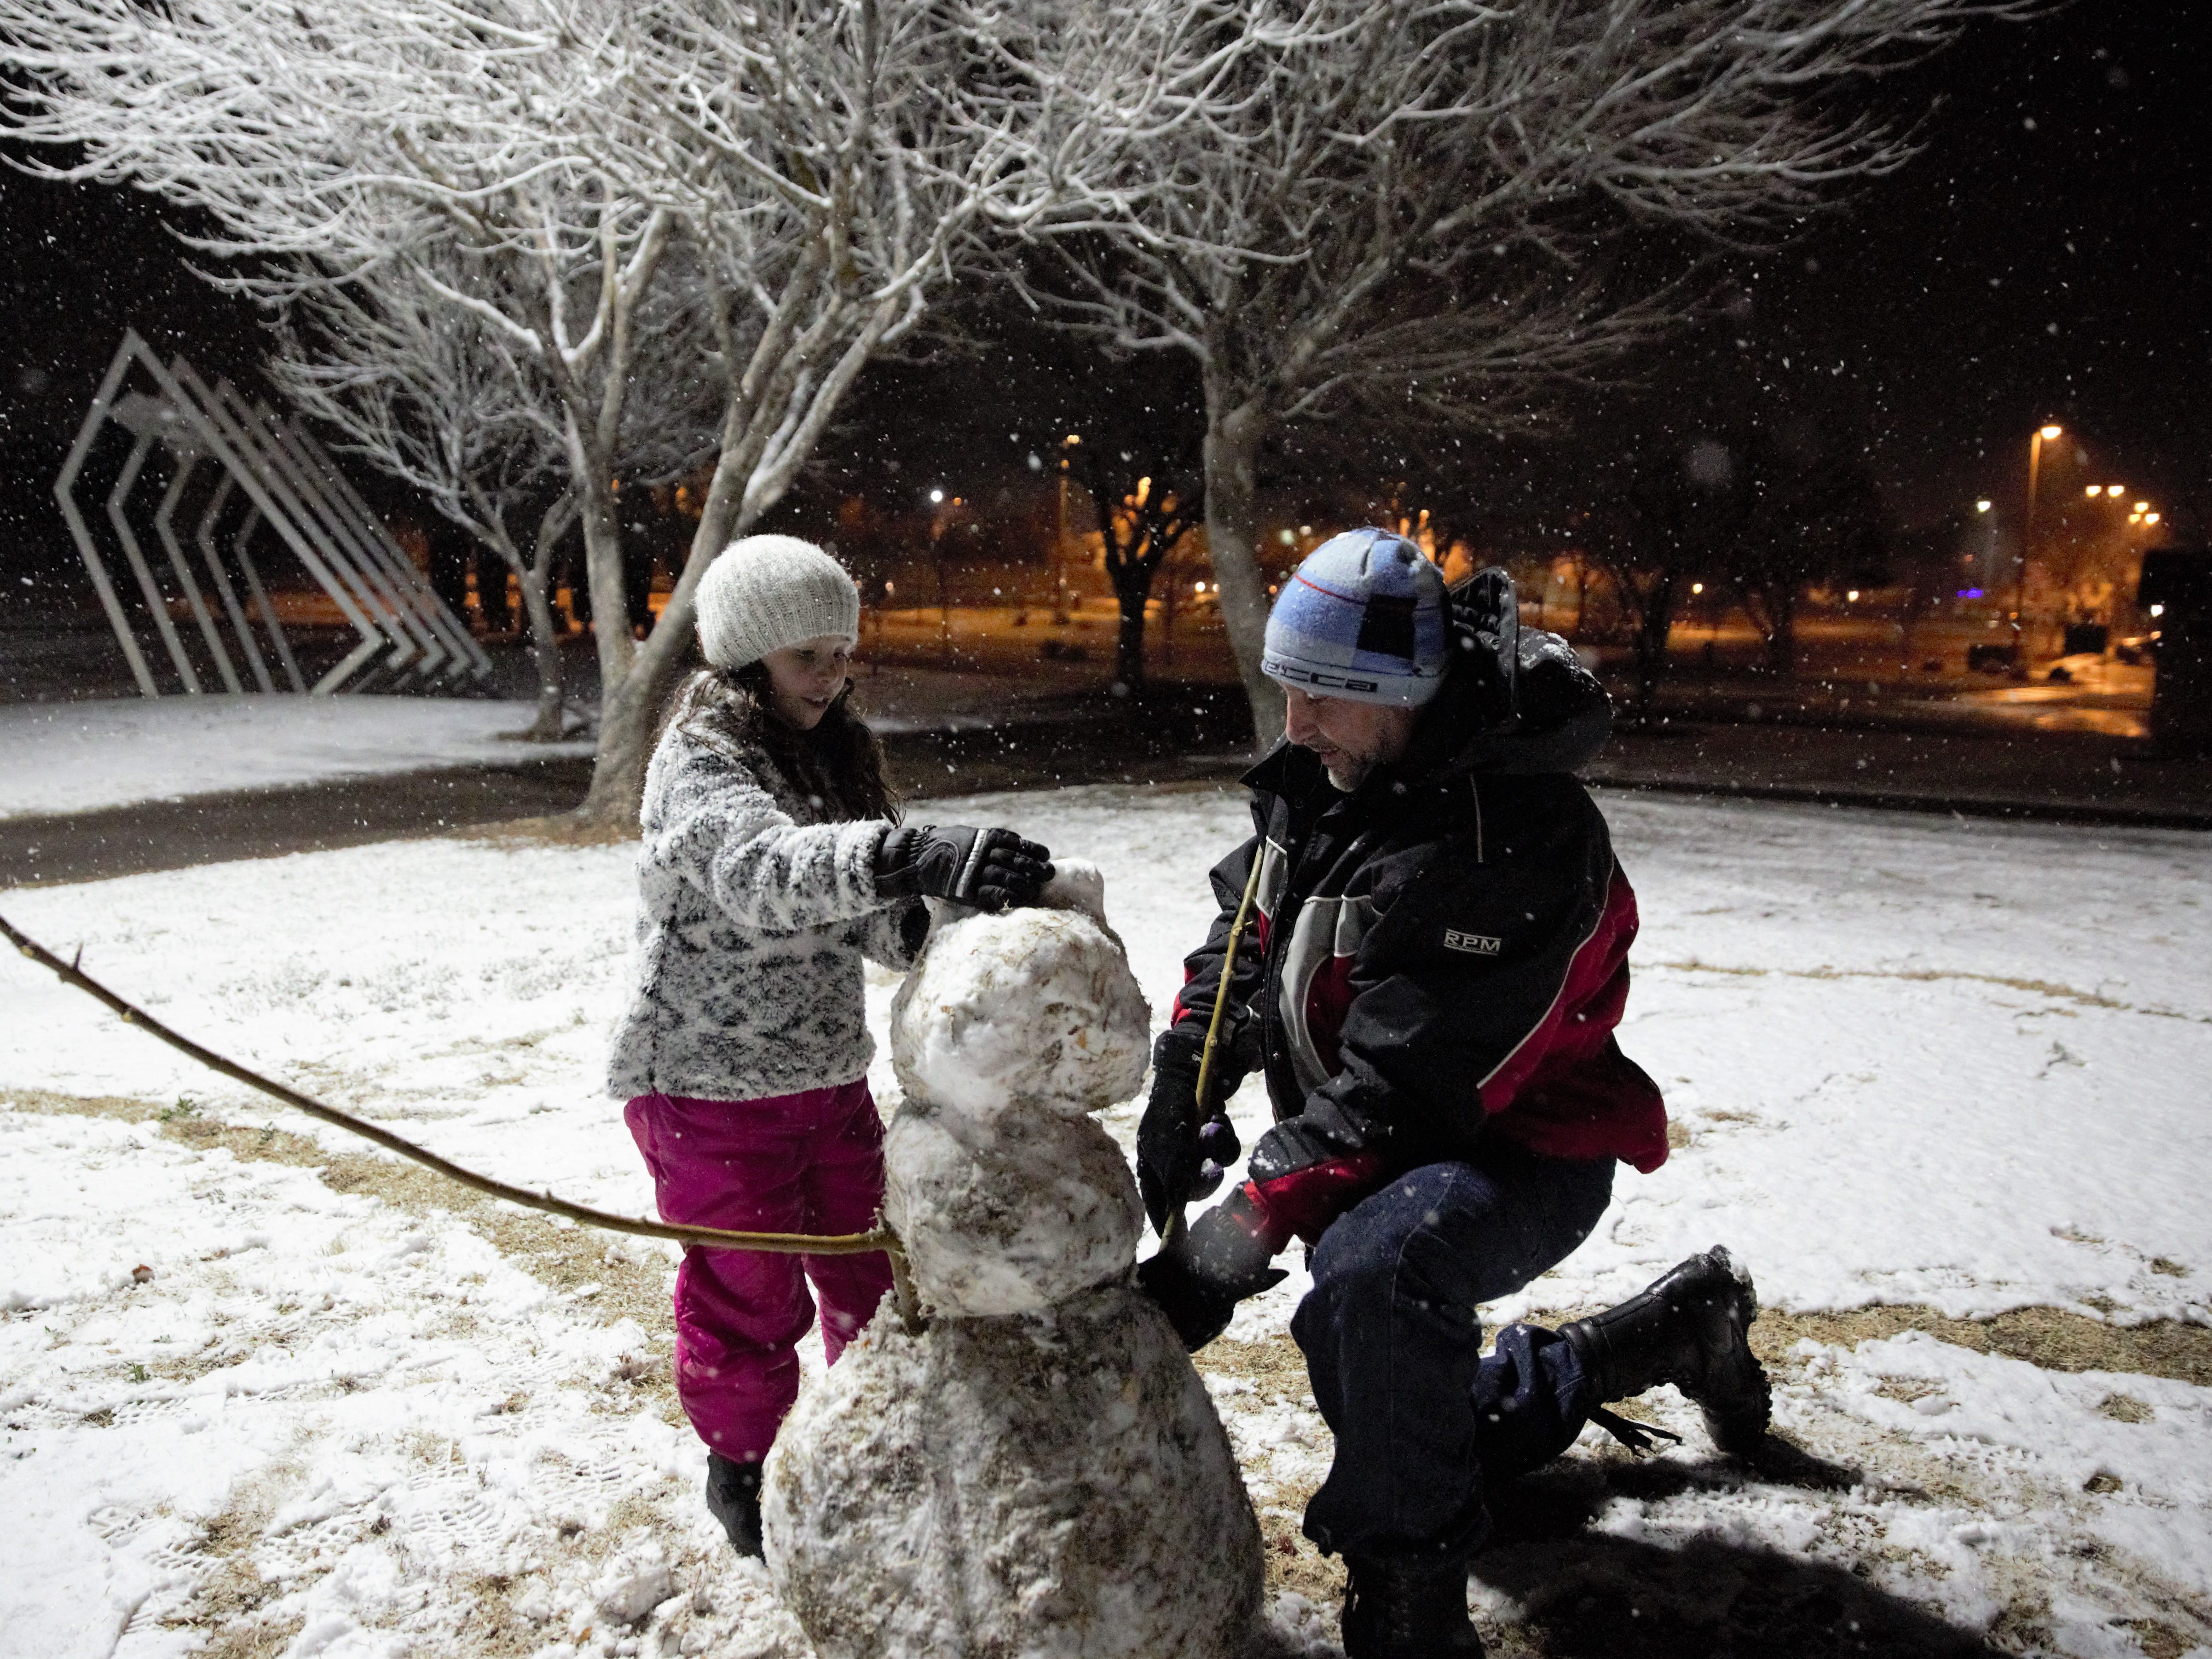 Maria Chavez, 9, left, and her father, James Chavez, work to build a snowman at Young Park in Las Cruces on the night of Wednesday, Jan. 2, 2019.